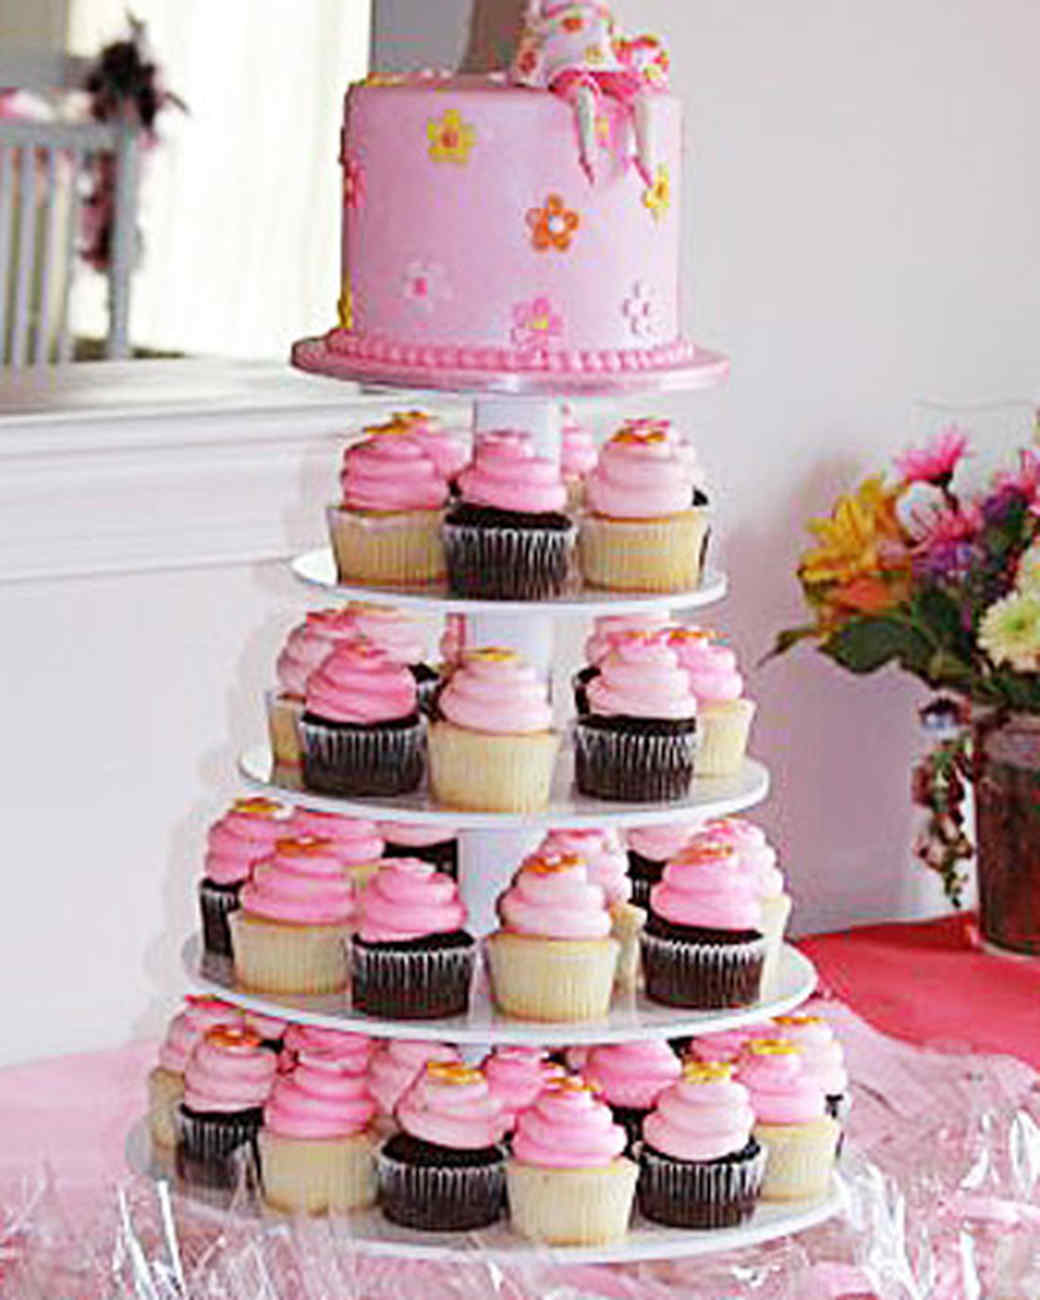 Girl baby shower cakes be equipped baby shower cupcake decorating ideas be equipped baby shower baby cake